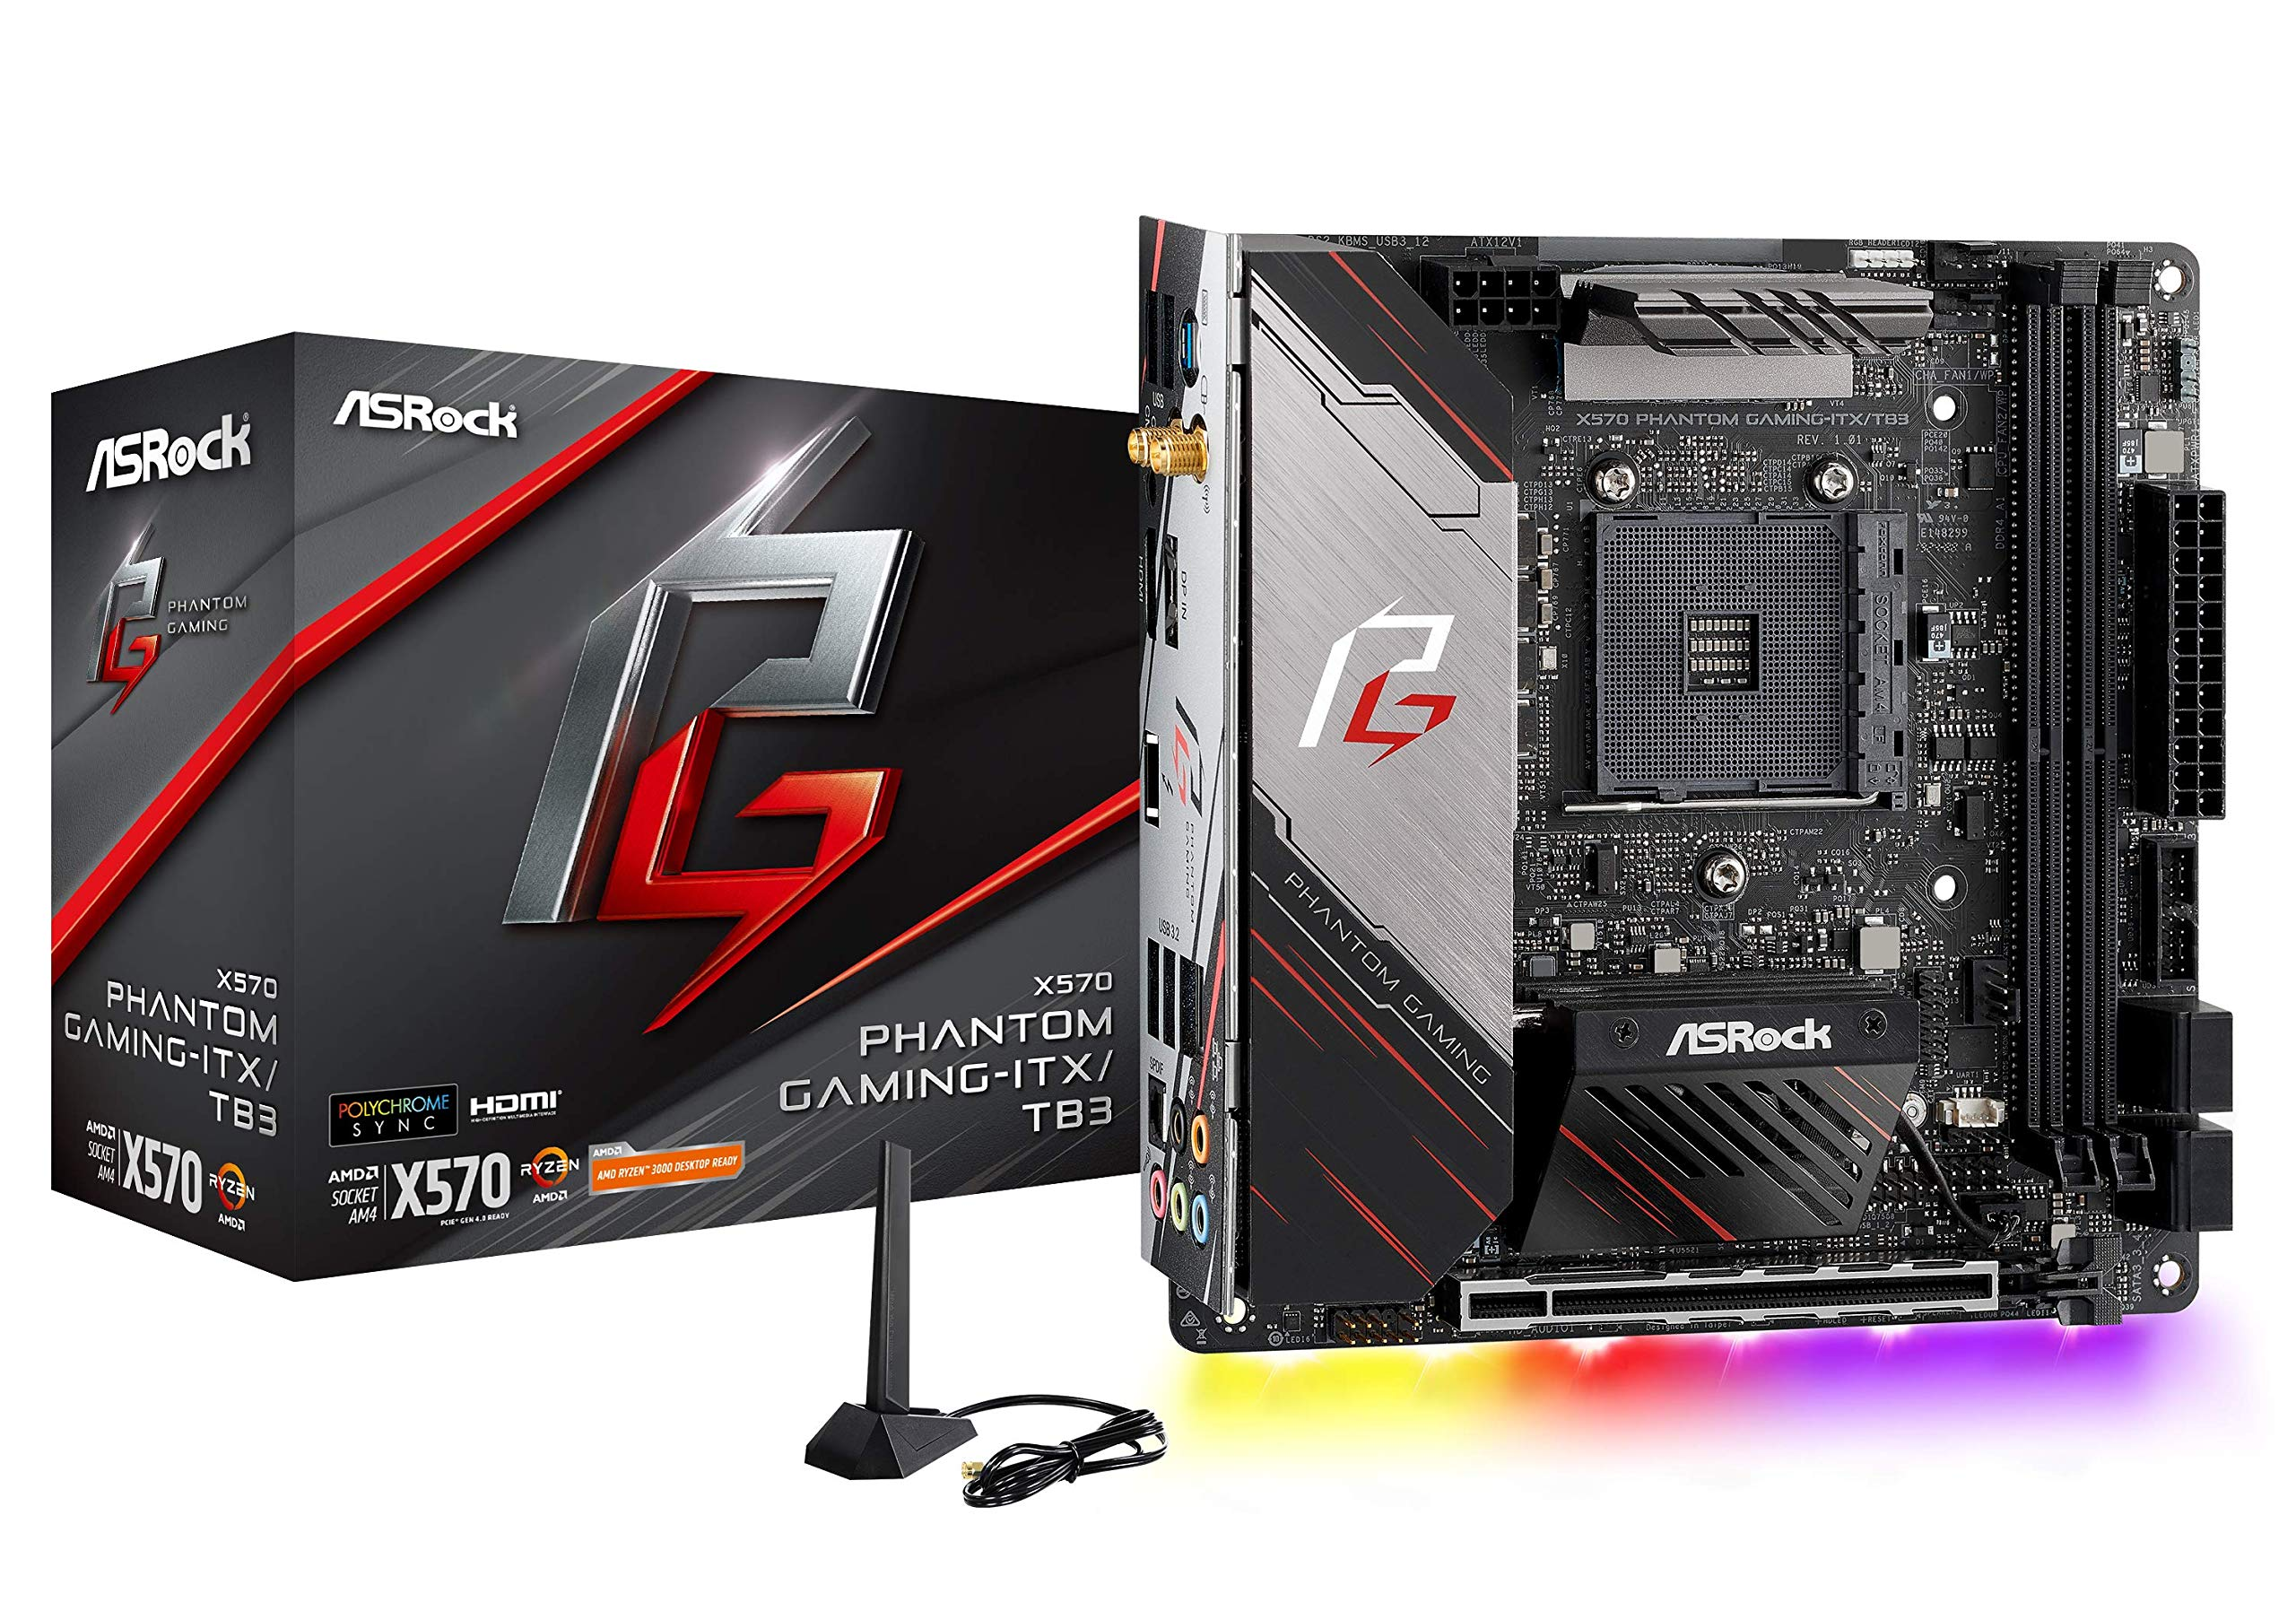 Asrock X570 Phantom Gaming-itx/tb3 Mini Itx Thunderbolt 3...